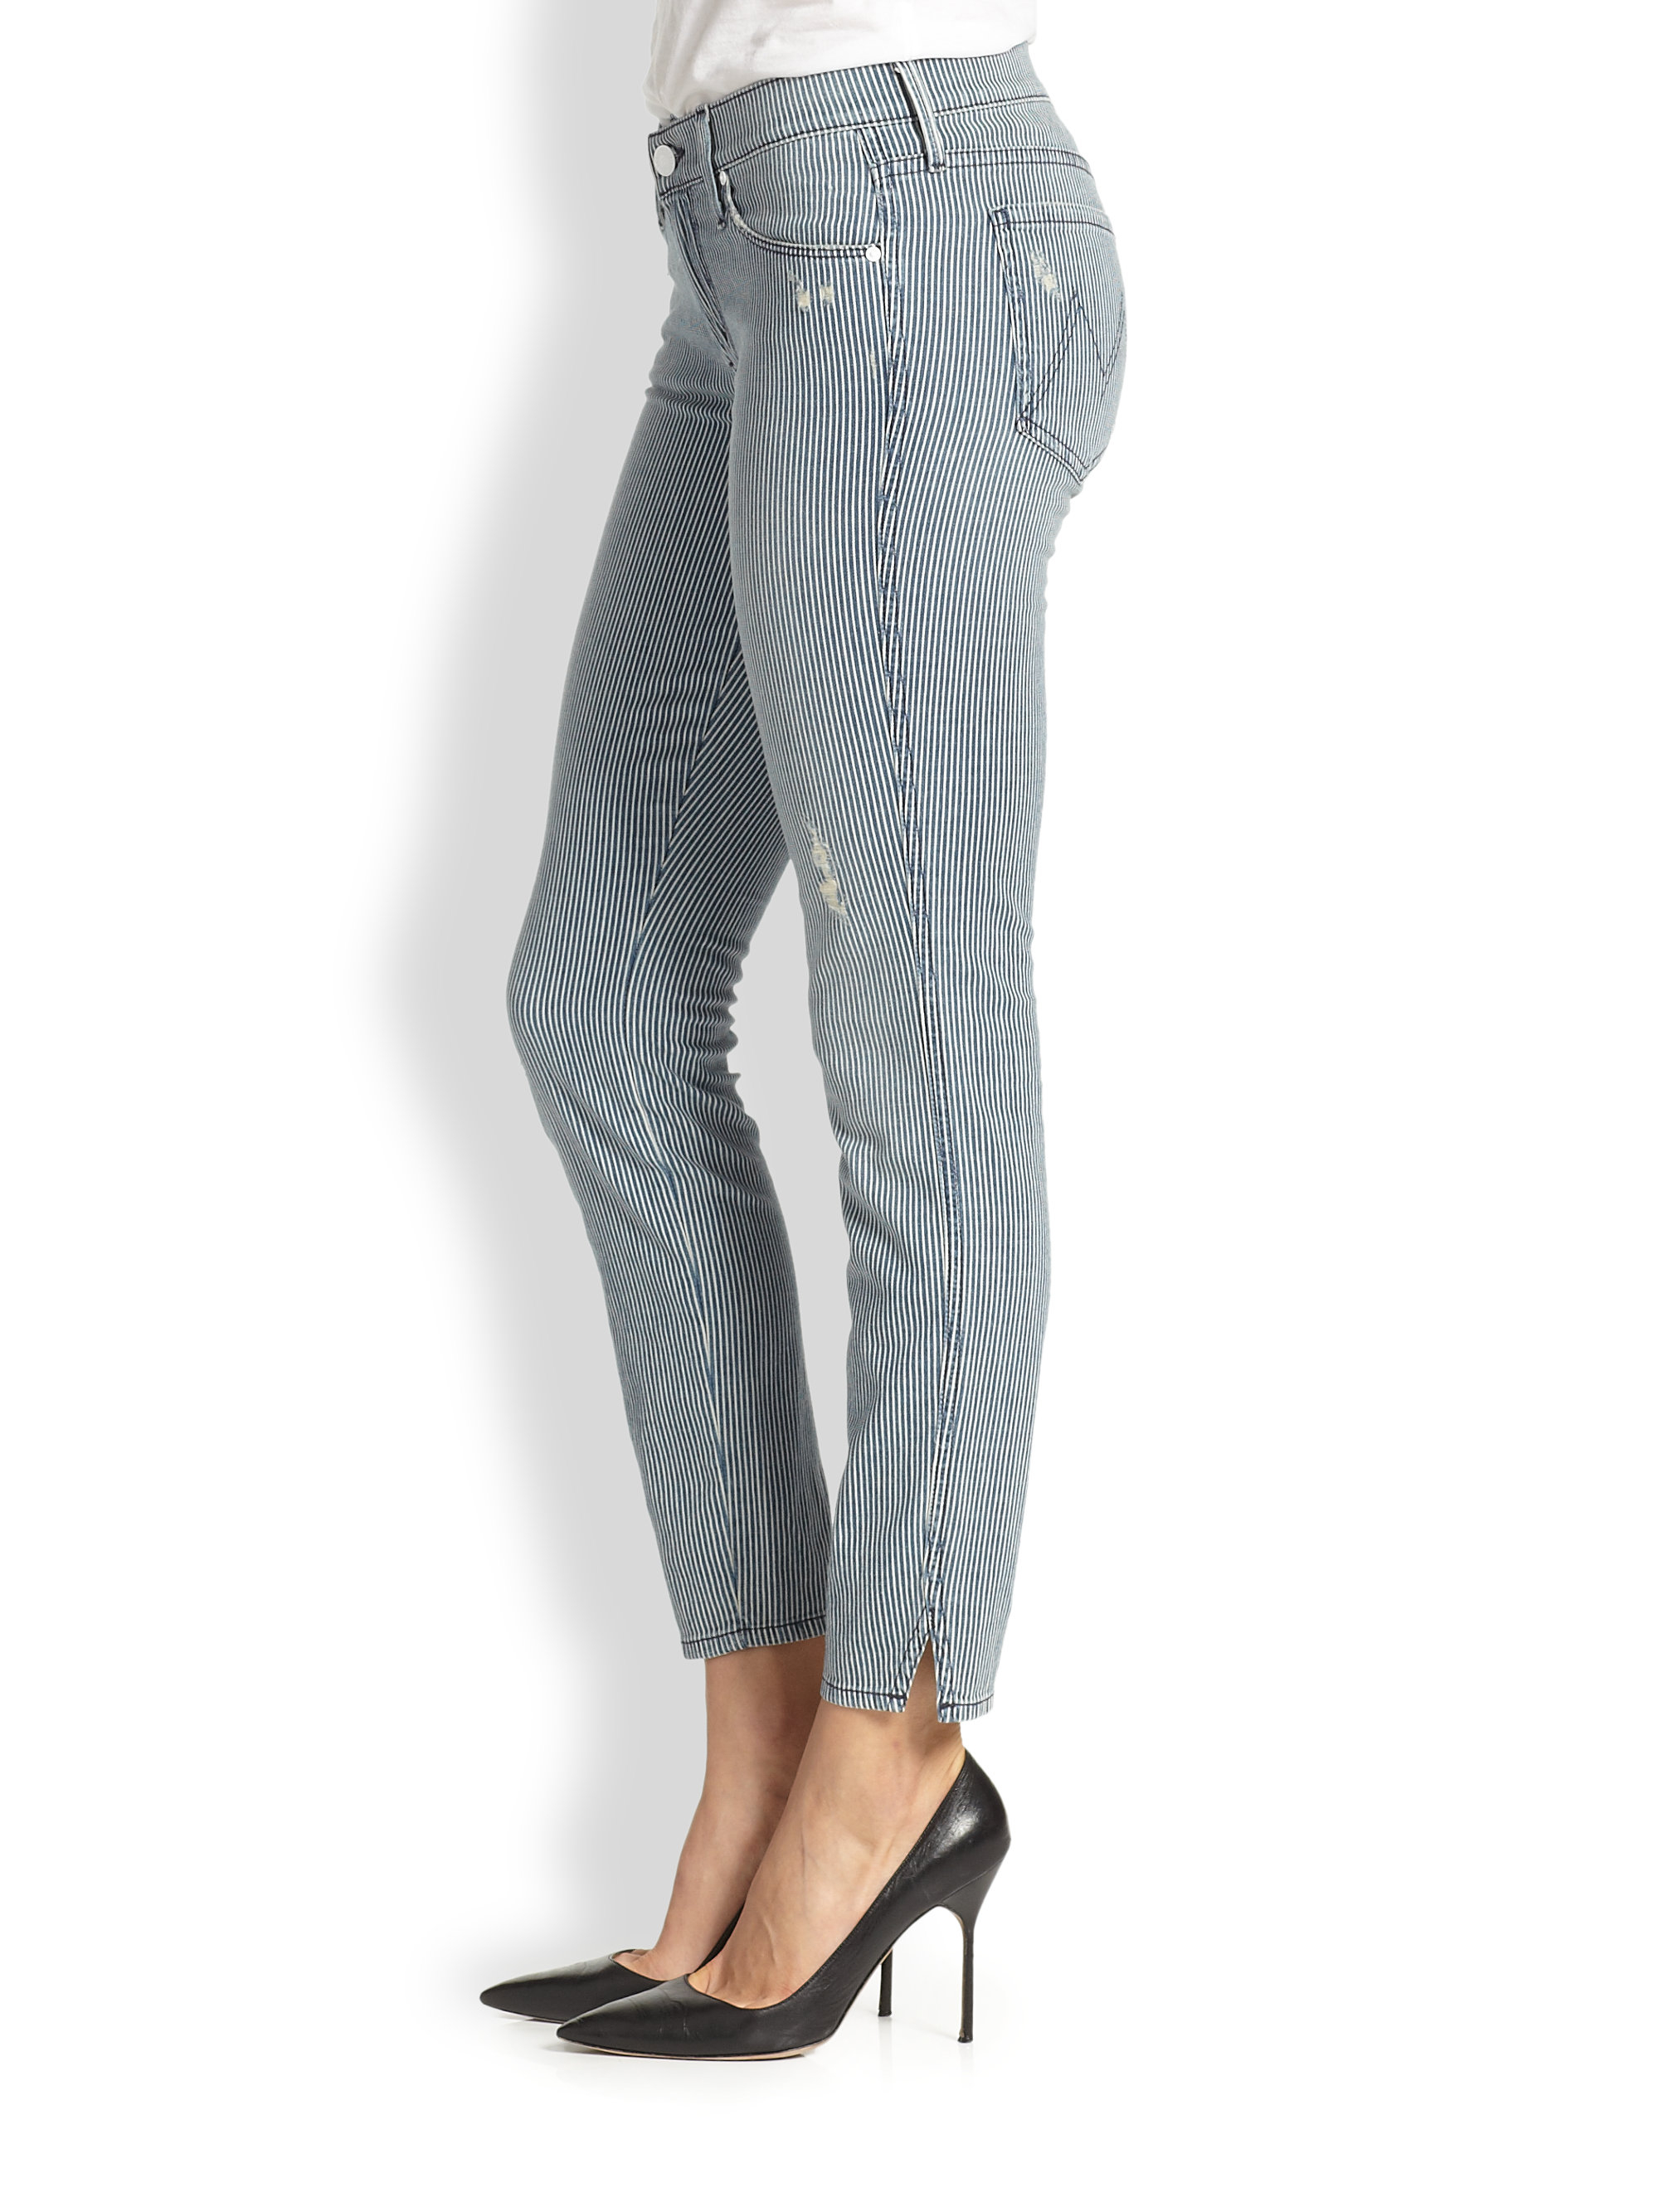 Mother The Vamp Distressed Striped Skinny Jeans in Gray | Lyst